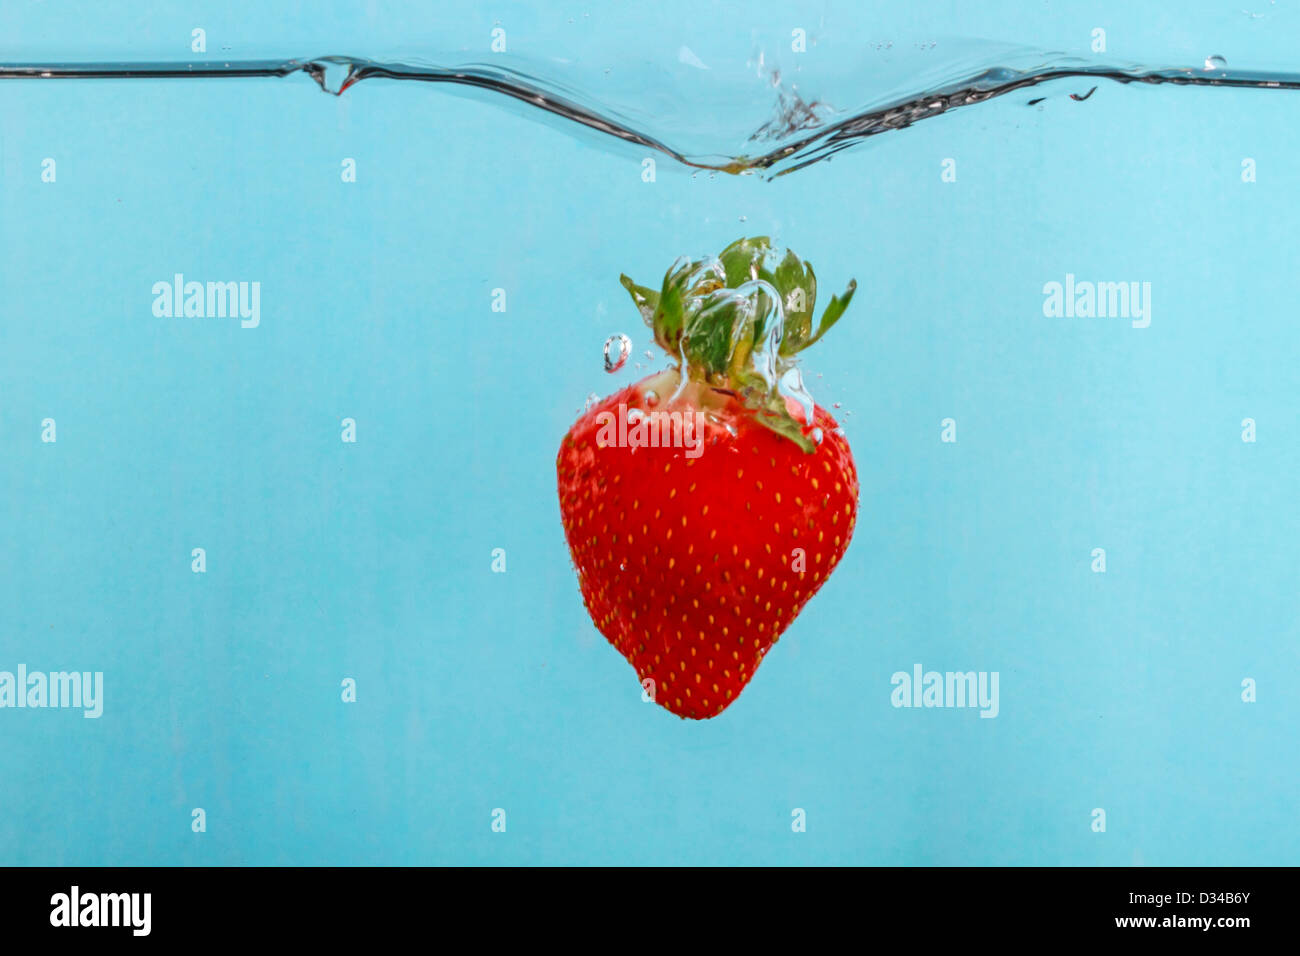 Strawberry Falling Into Water With Stop Motion Photography To Capture The Action